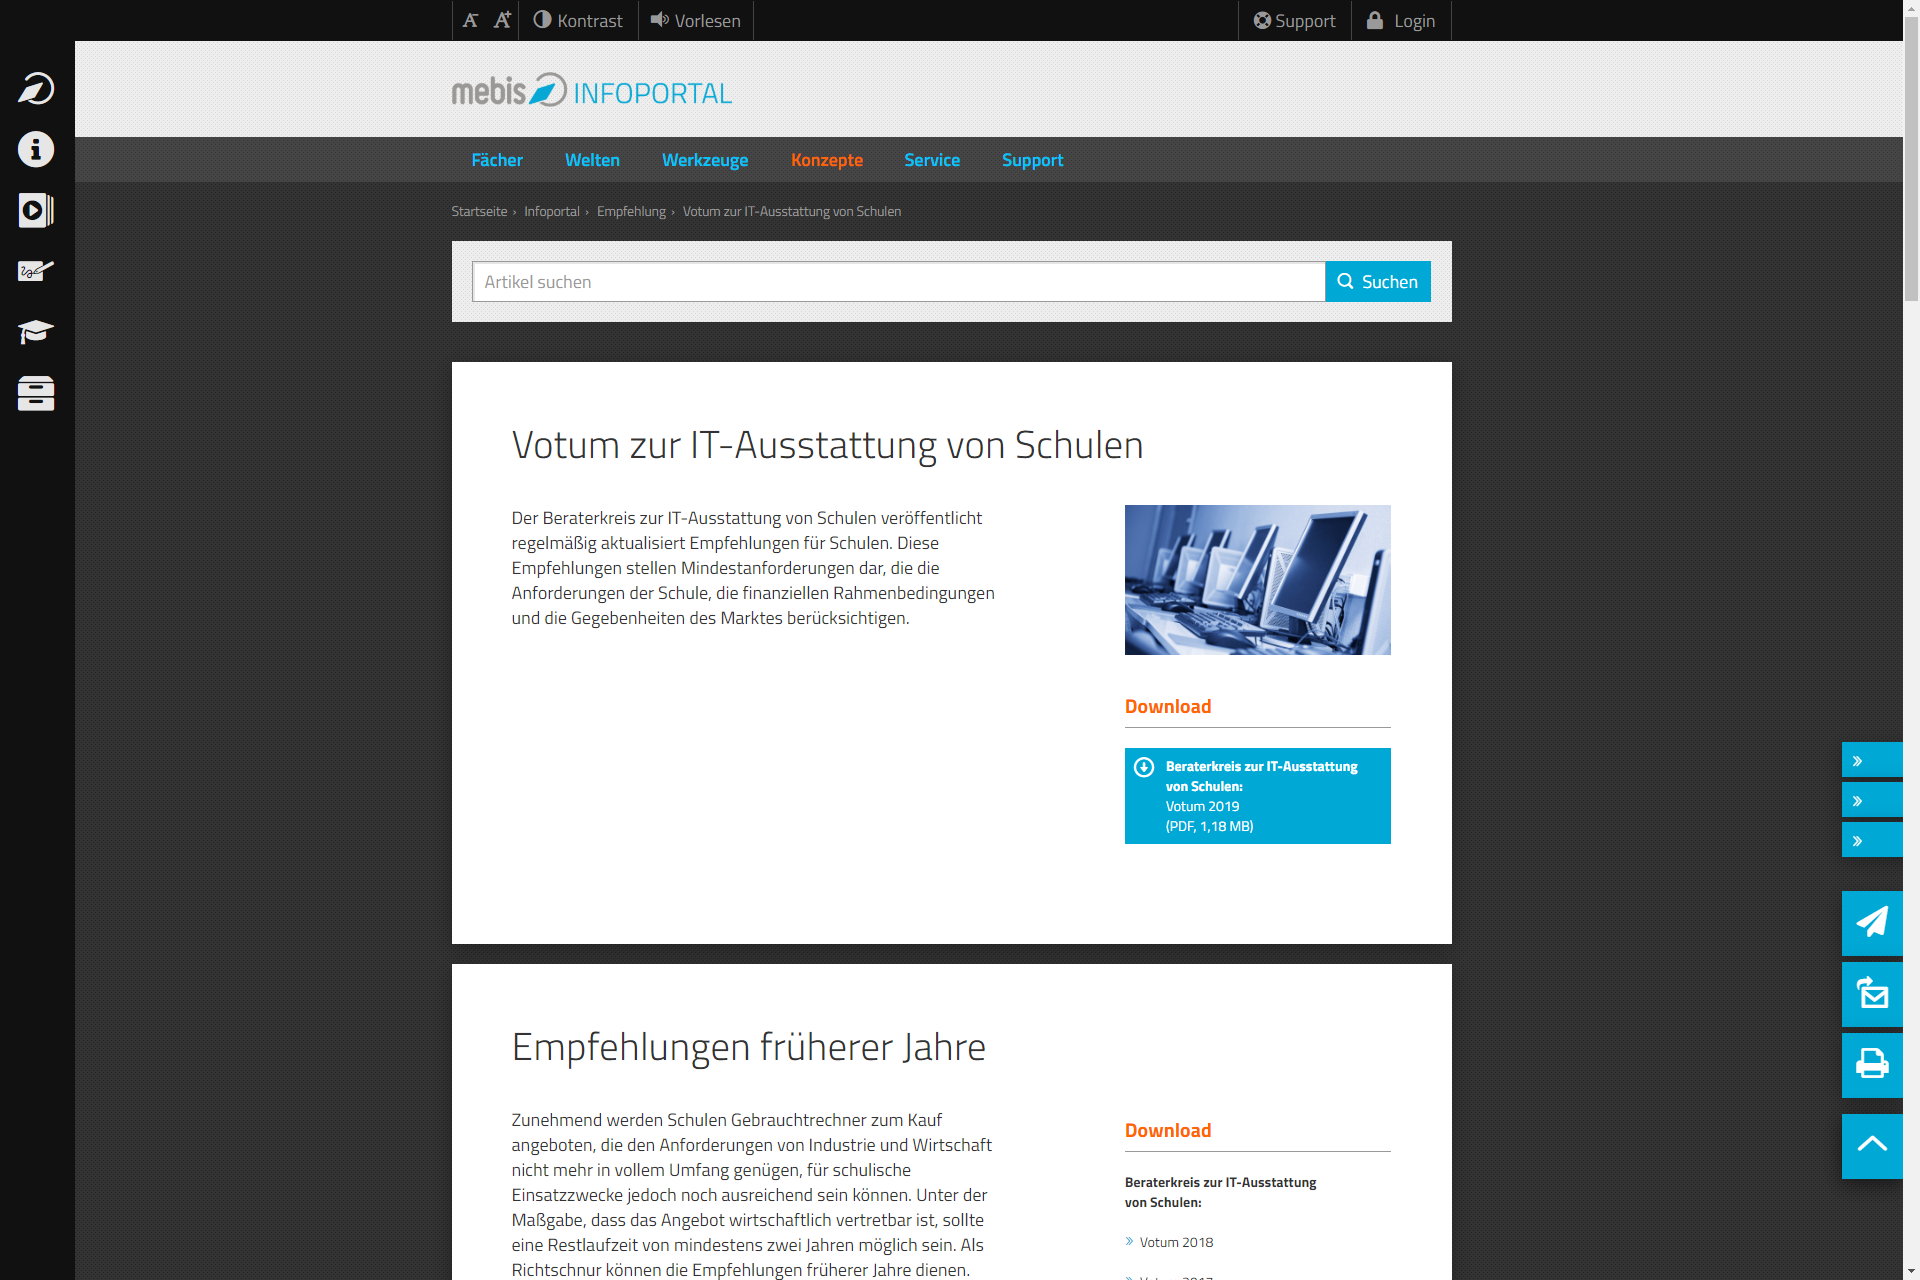 Screenshot Webseite Mebis Infoportal (16.04.2020)